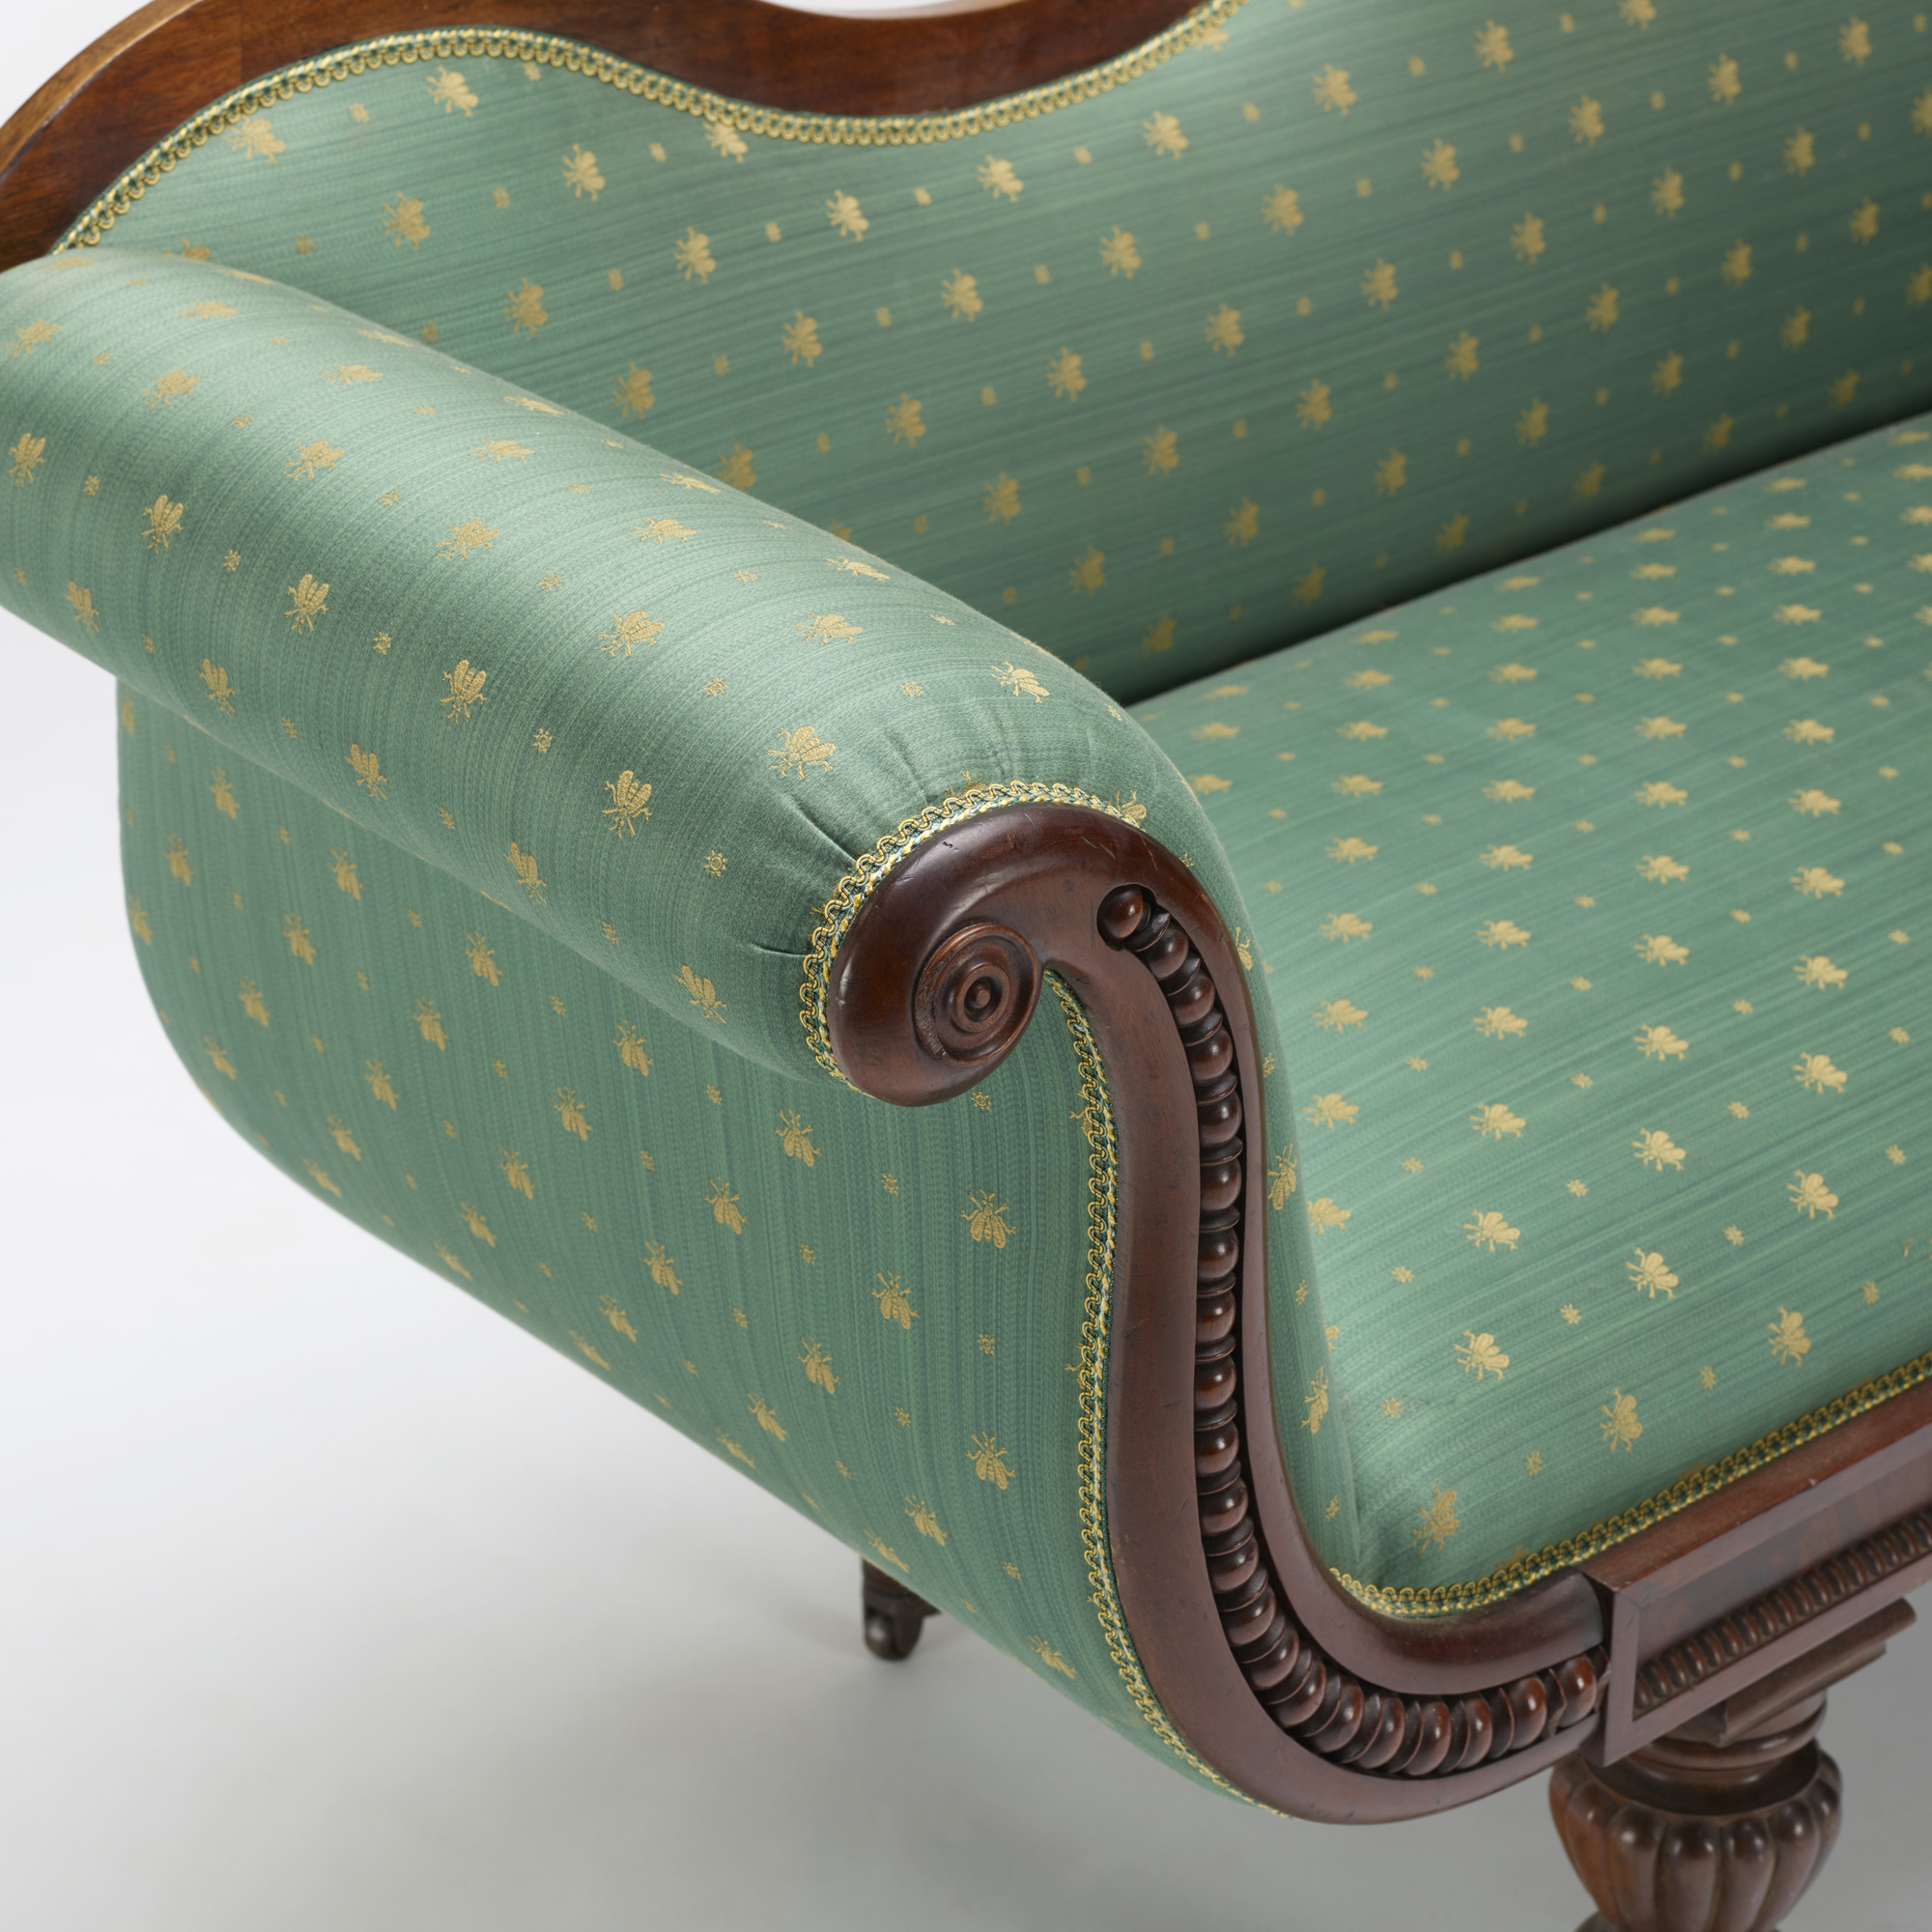 322: 19th Century / Gondola sofa (3 of 3)